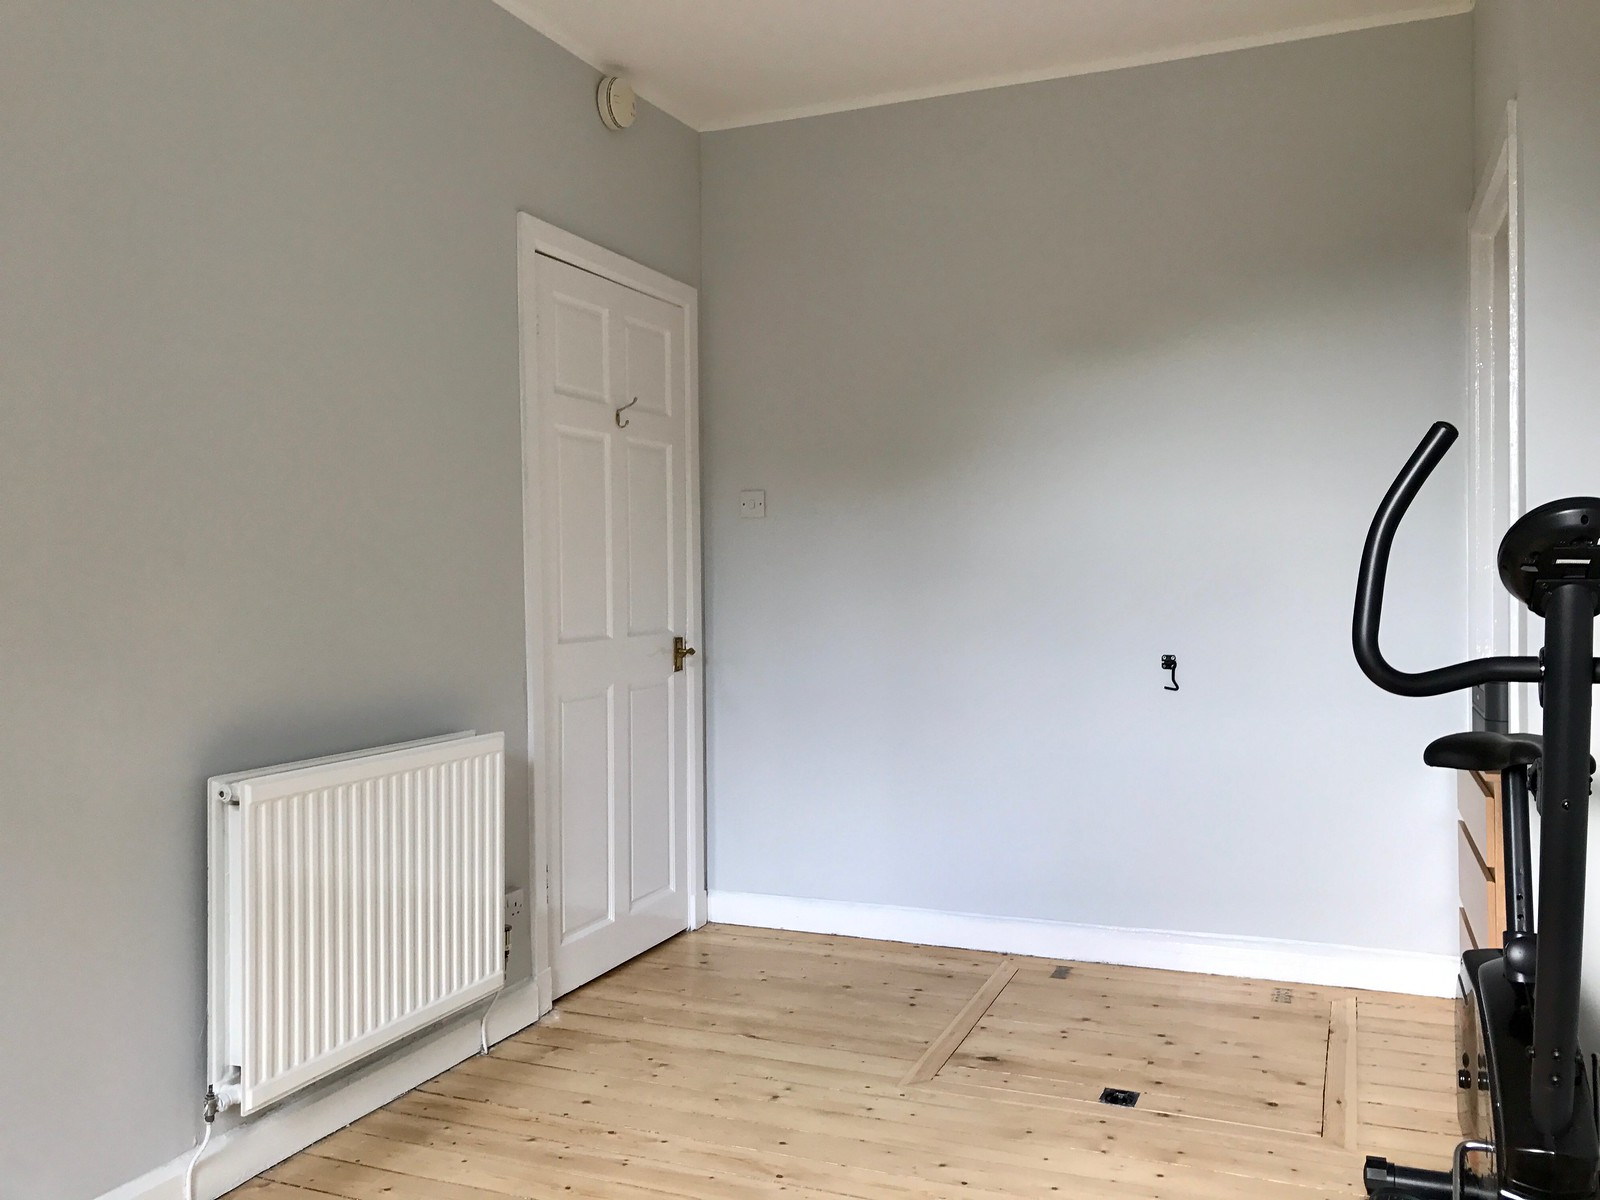 Photo taken from the opposite angle, as if sitting in my desk chair looking back towards the door in the diagonally opposite corner. All walls are soft grey, with white ceiling and woodwork, all completely blank. It's a contemplative, calming space.